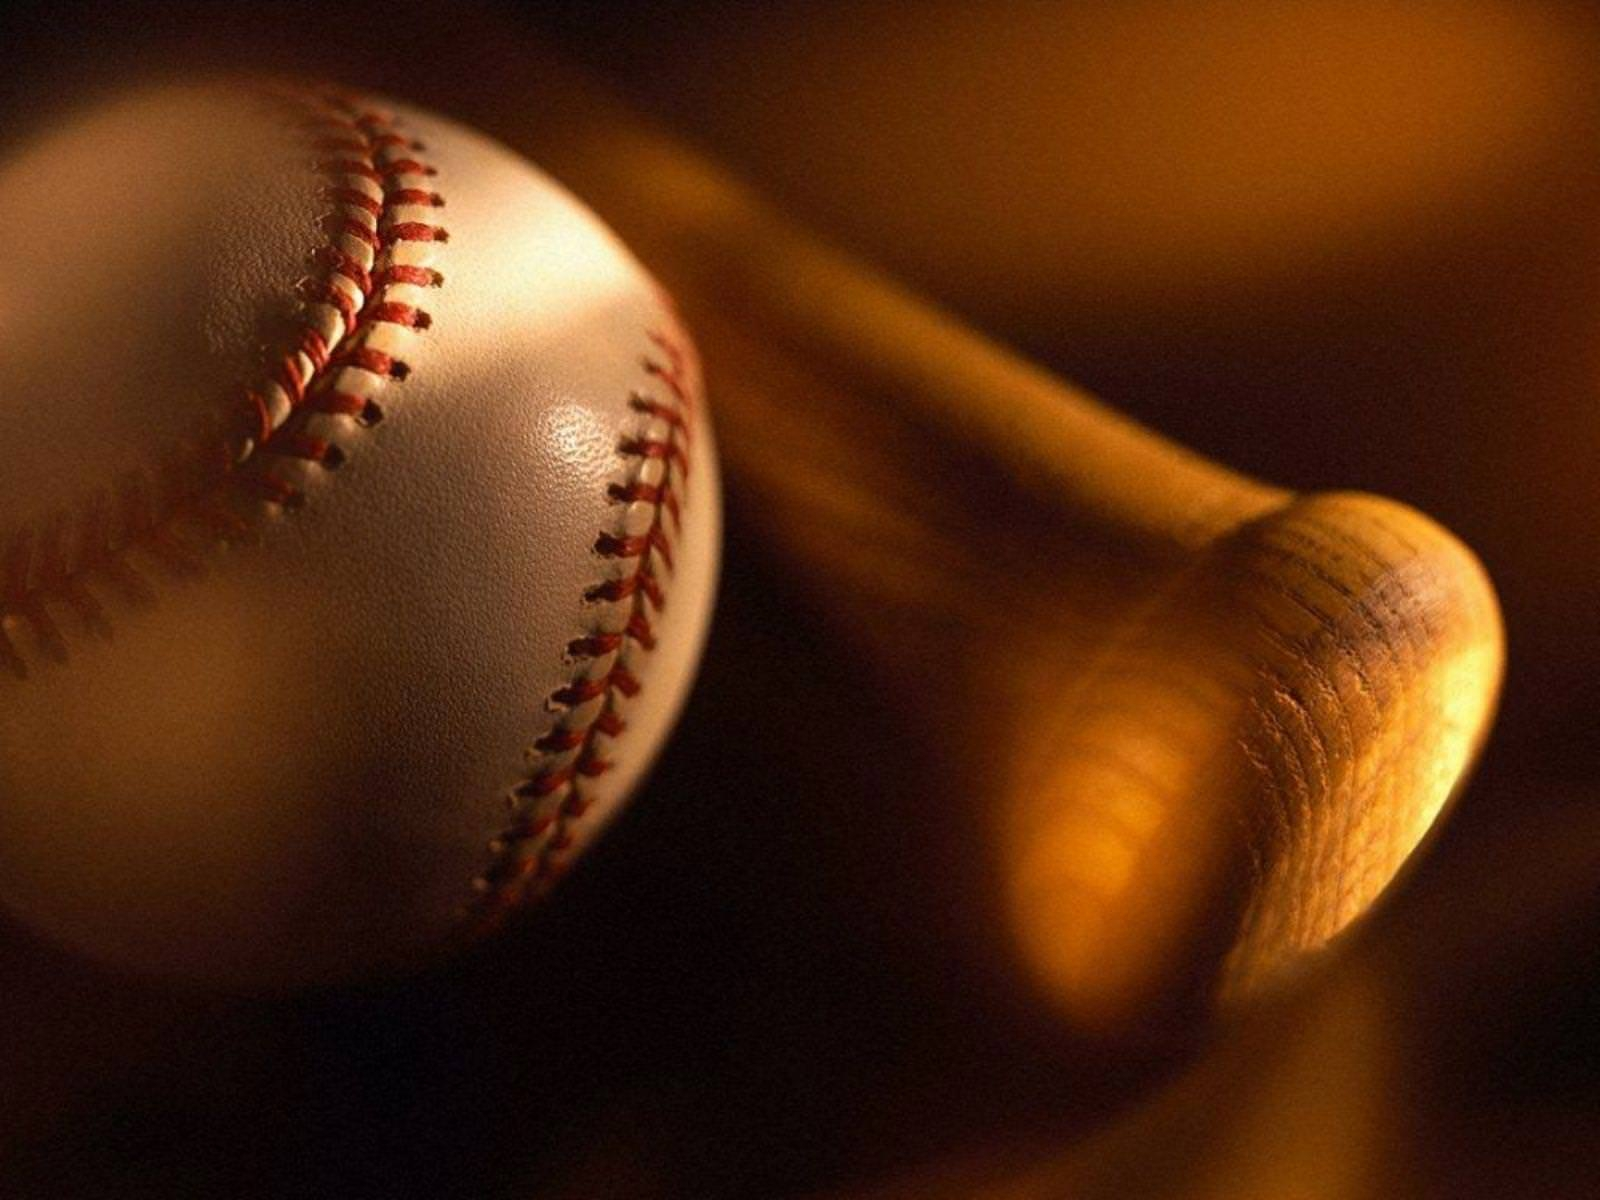 Baseball with Bat Wallpaper